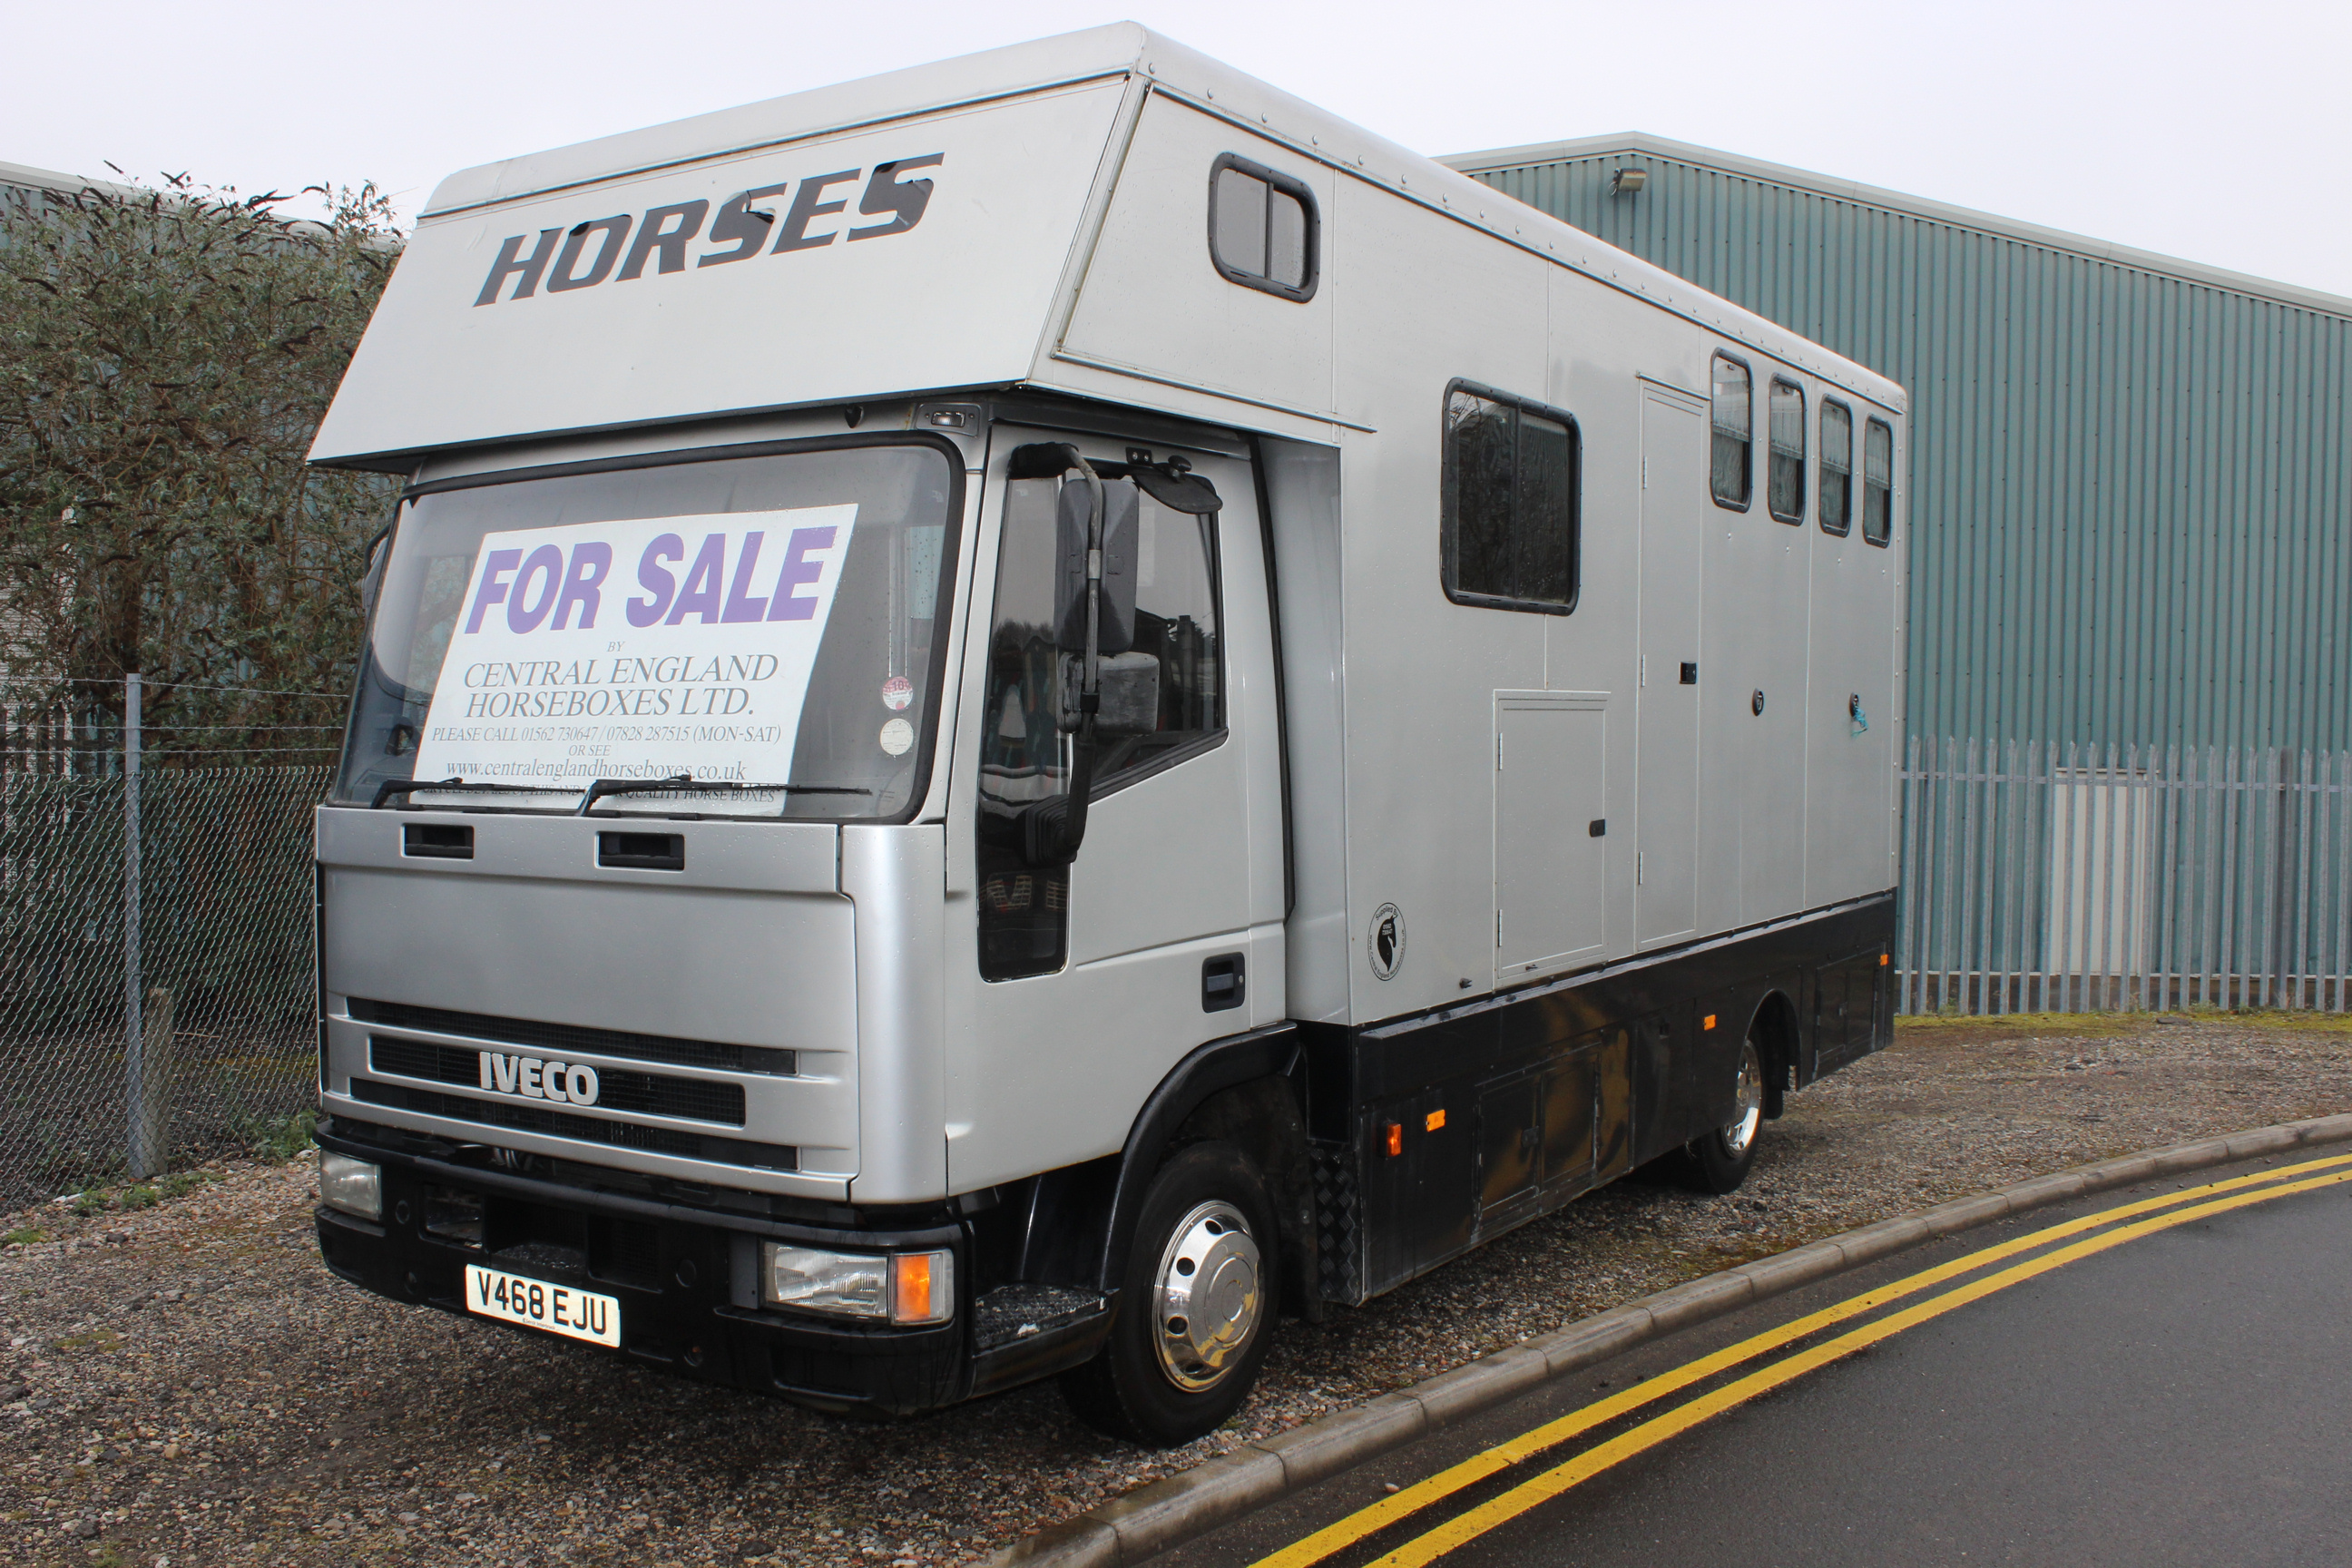 Iveco 7 5t Compact Horsebox Central England Horseboxes